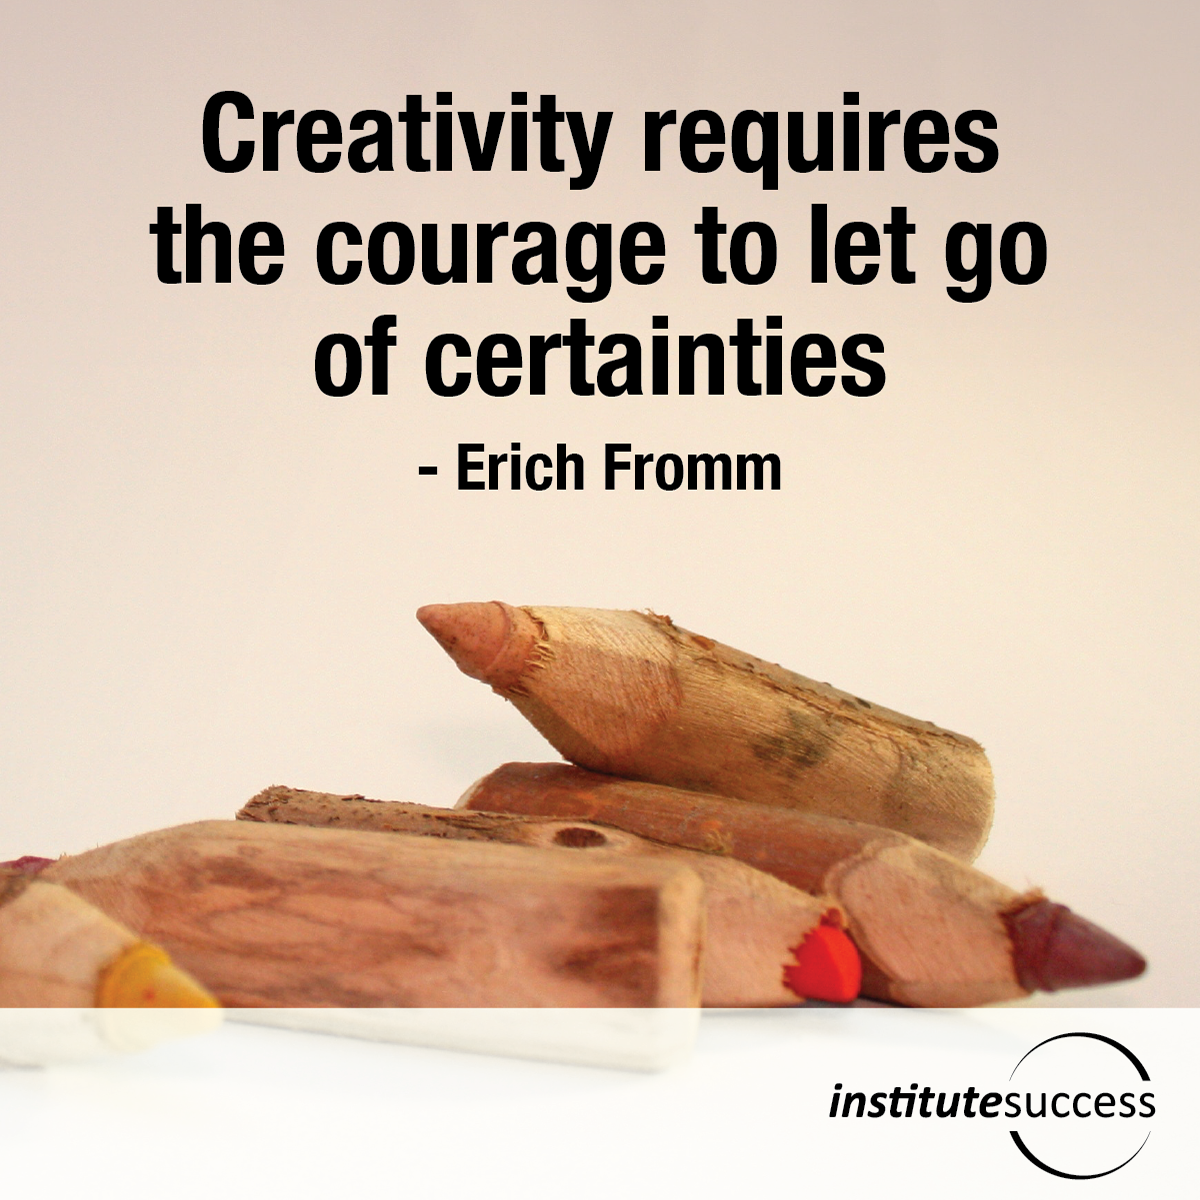 Creativity requires the courage to let go of certainties – Erich Fromm